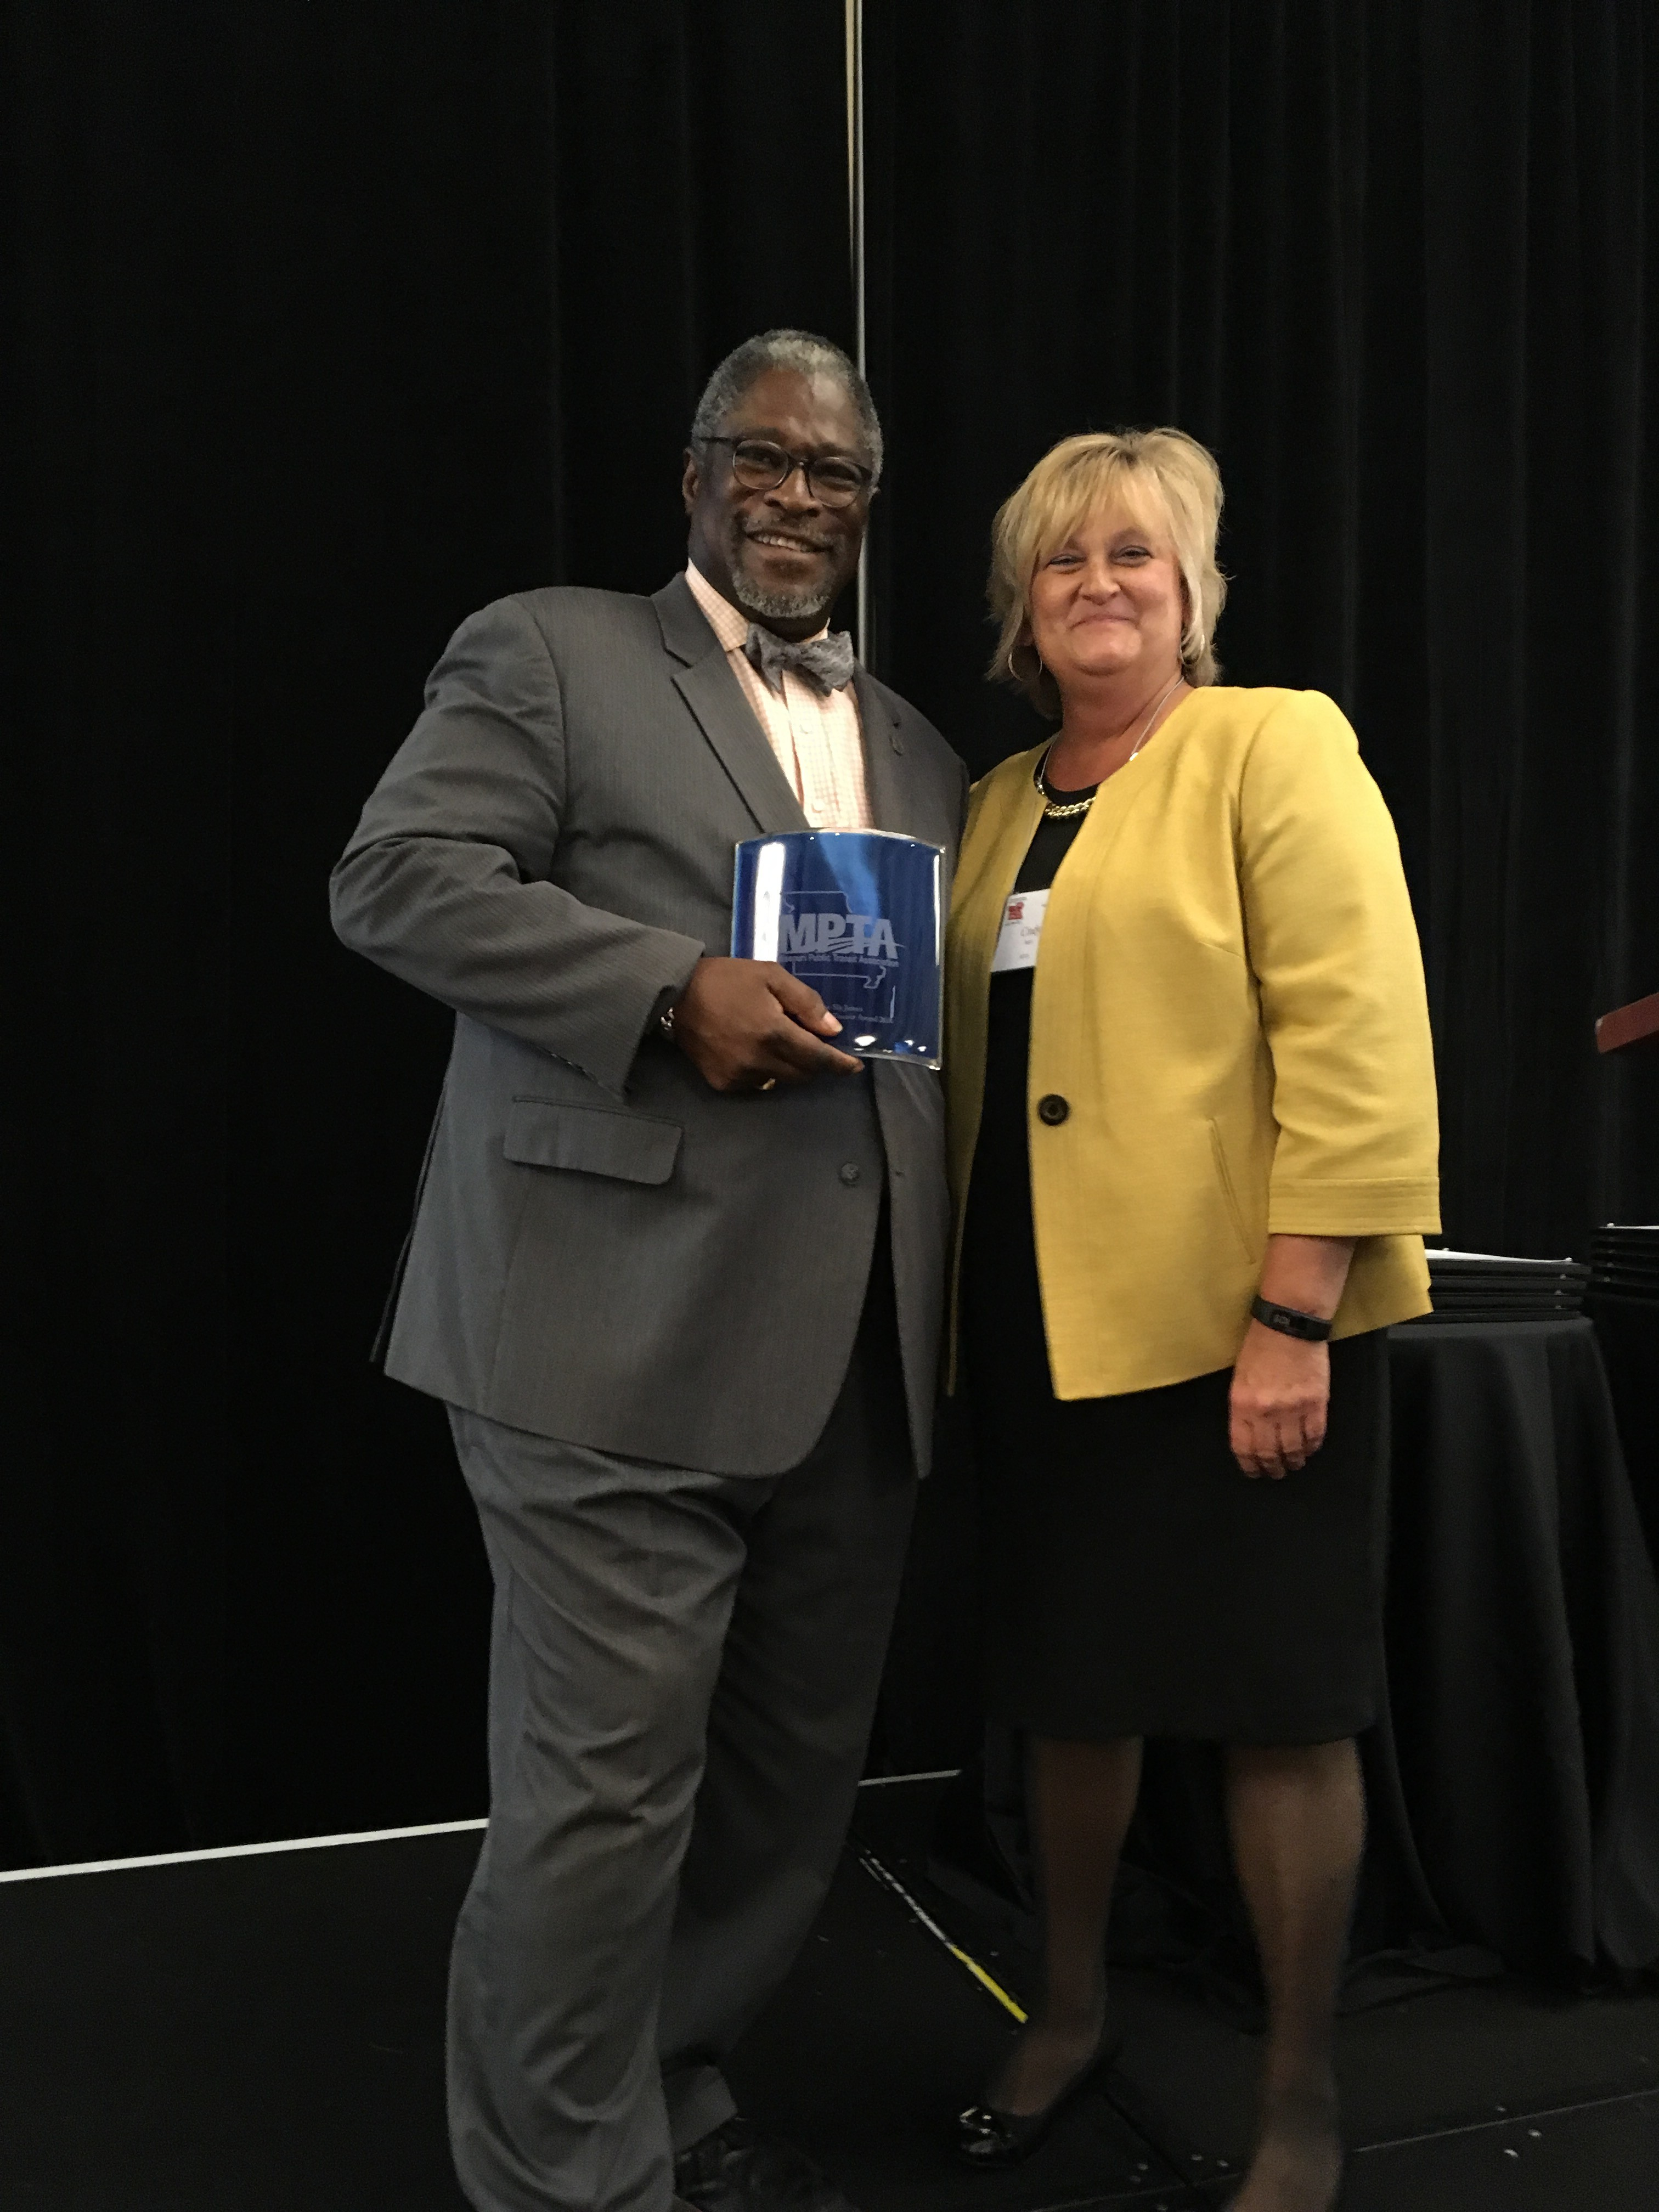 Mayor Sly James with KCATA's Cindy Baker at the 2016 MPTA Conference in Kansas City.